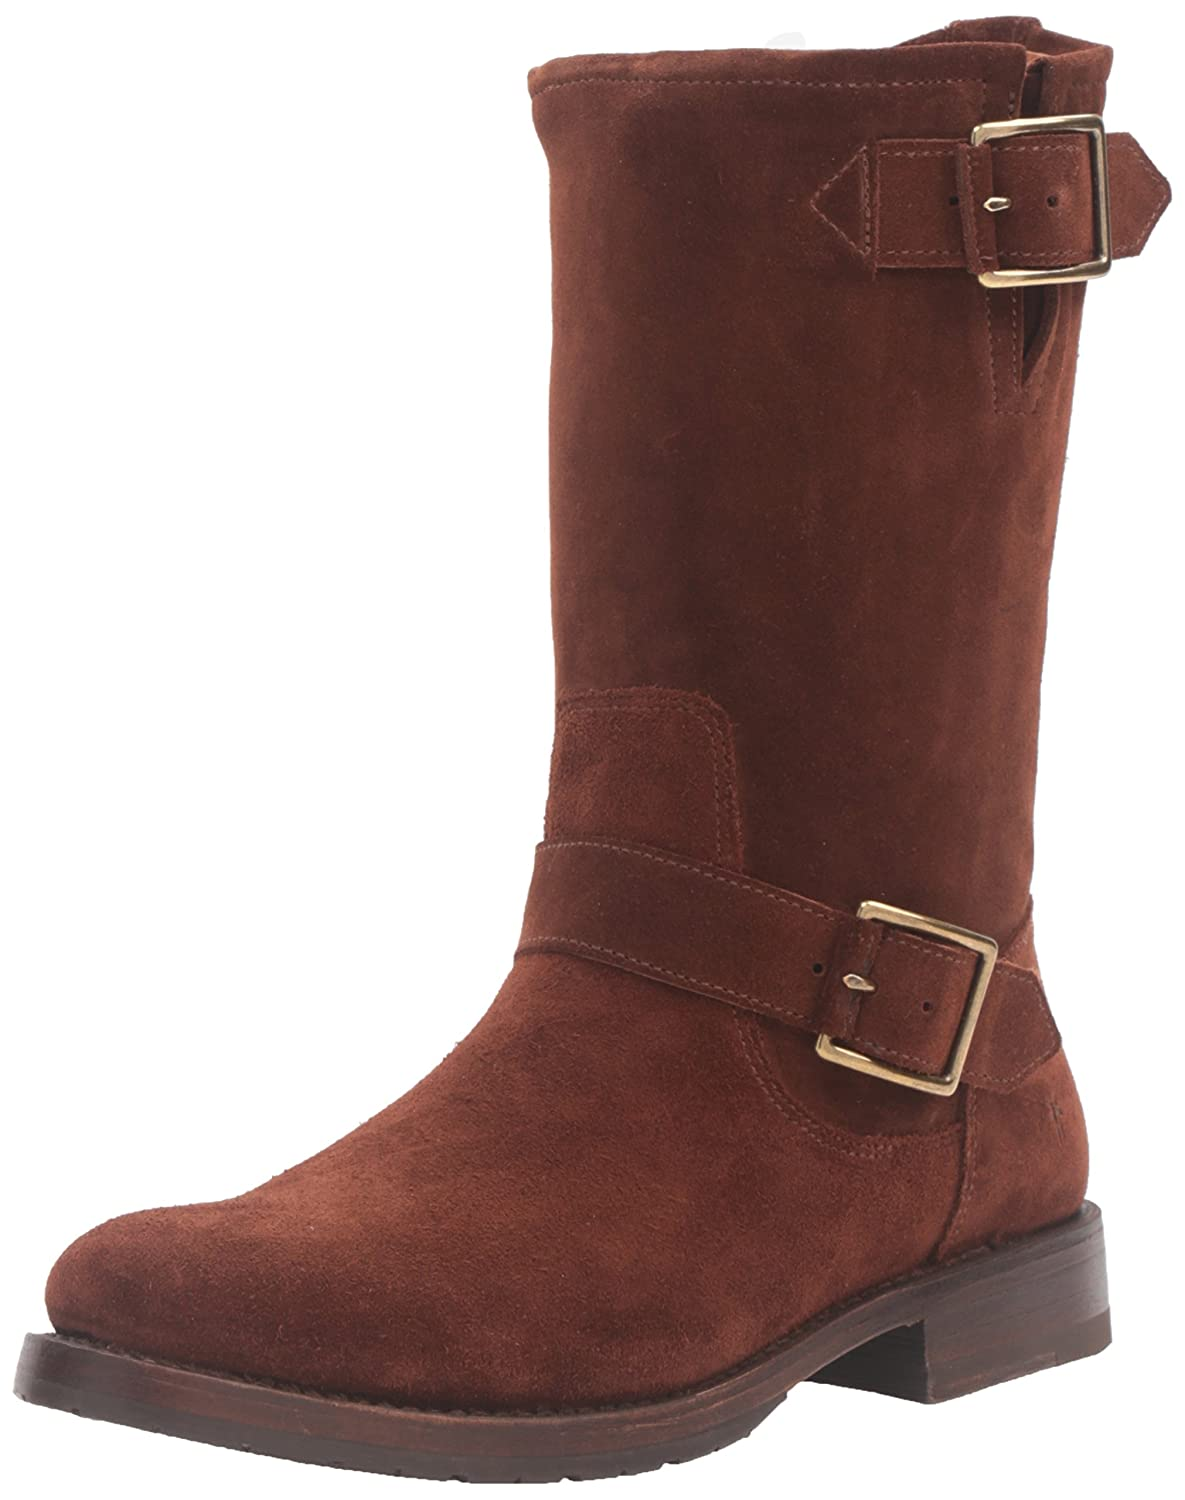 FRYE Women's Natalie Mid Suede Engineer Boot B0193YW03S 6.5 B(M) US|Brown